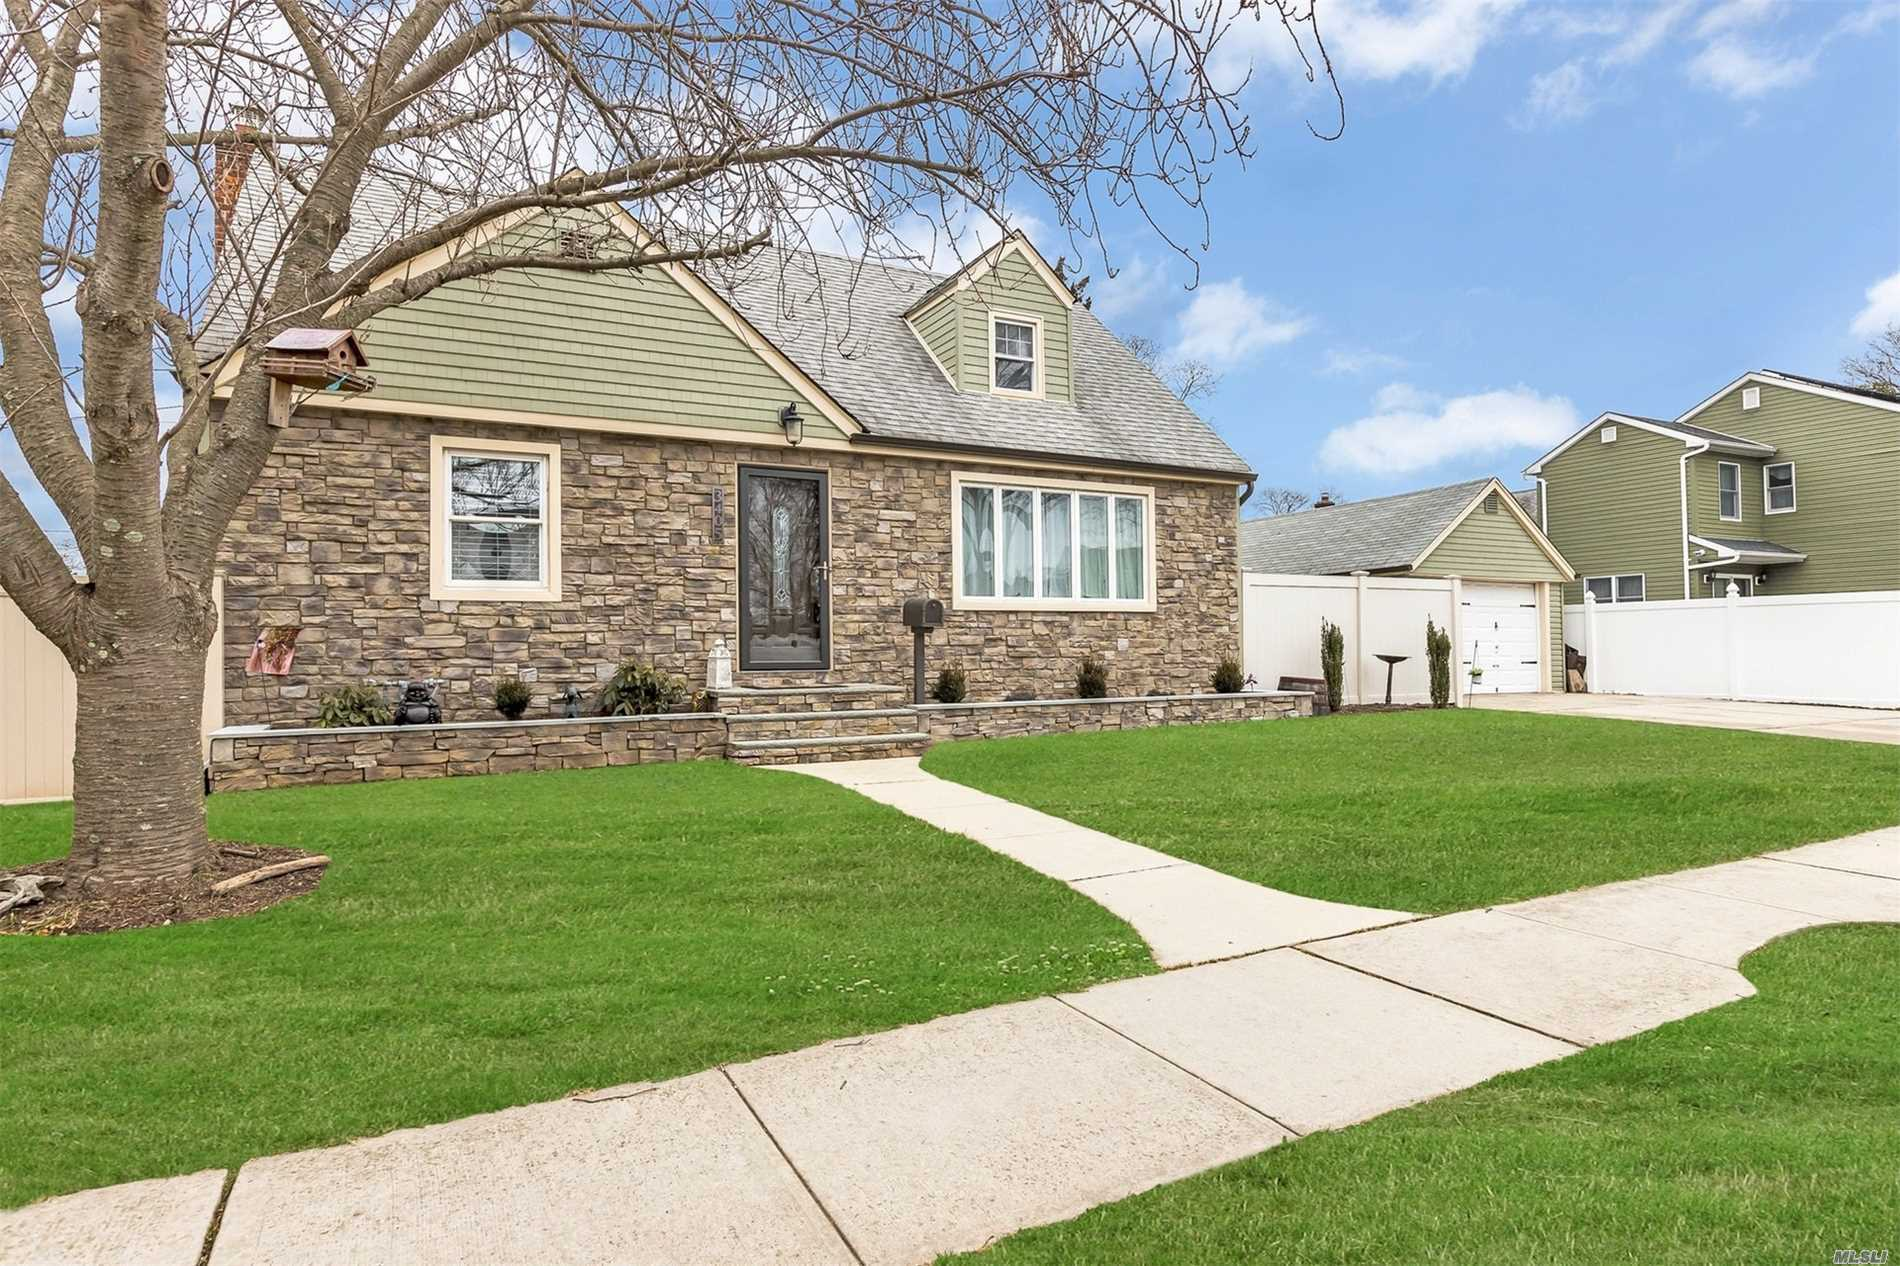 Beautifully Updated And Maintained Home Offers 3 Huge Bedrooms, New Bath, New Siding With Stone, Pvc Fencing, Updated Kitchen, Roof And Gas Heating System Within 6 Years, Beautiful Hardwood Floors, Full Finished Basement With Outside Entrance. All Nestled On A Quiet Block. Seaford Schools! Won't Last!